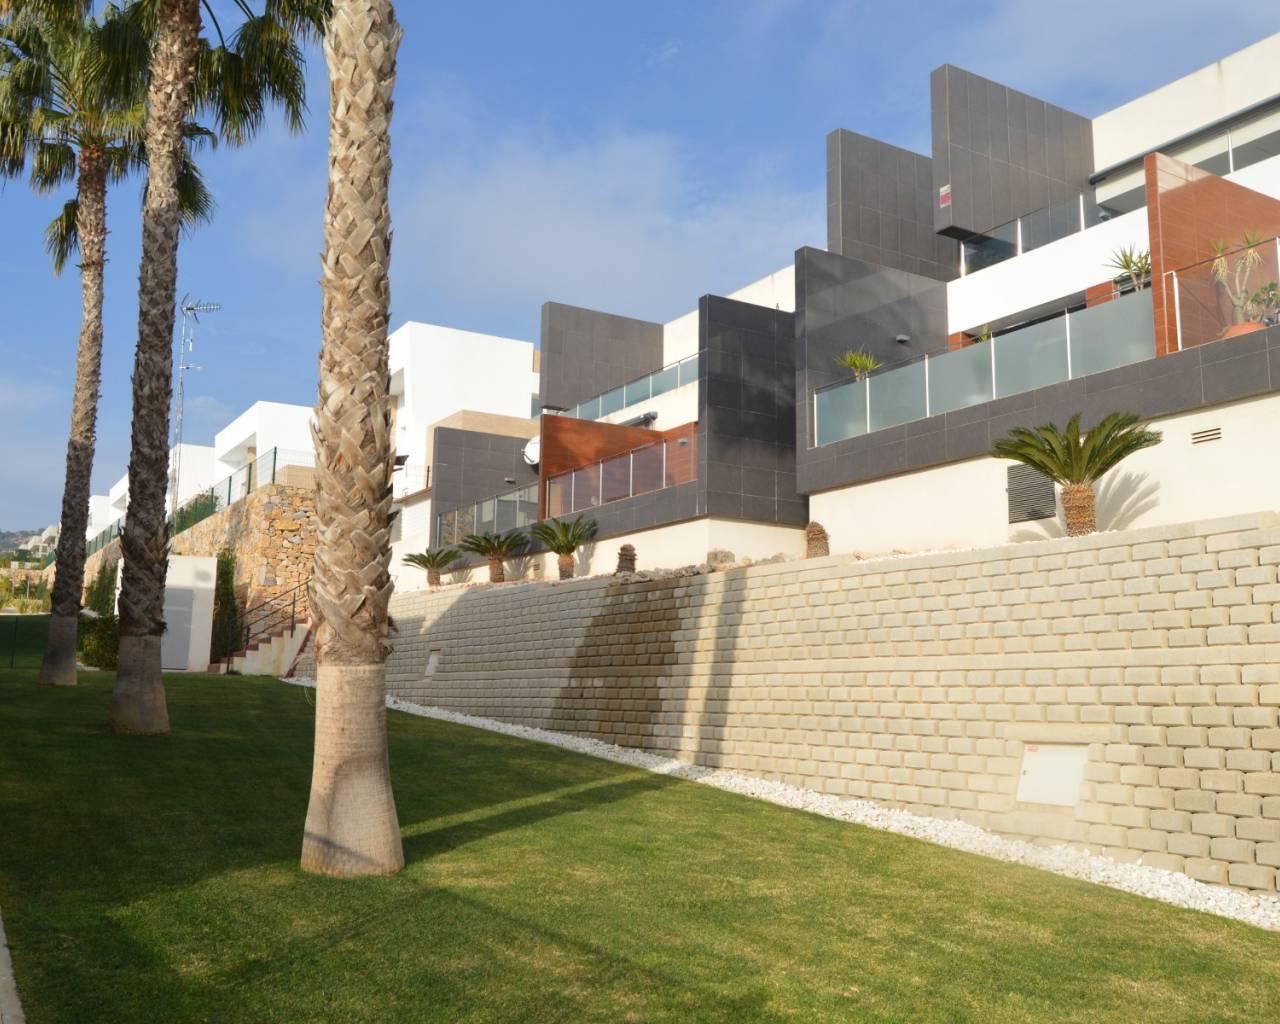 Apartment - Wederverkoop - Algorfa - La Finca Golf